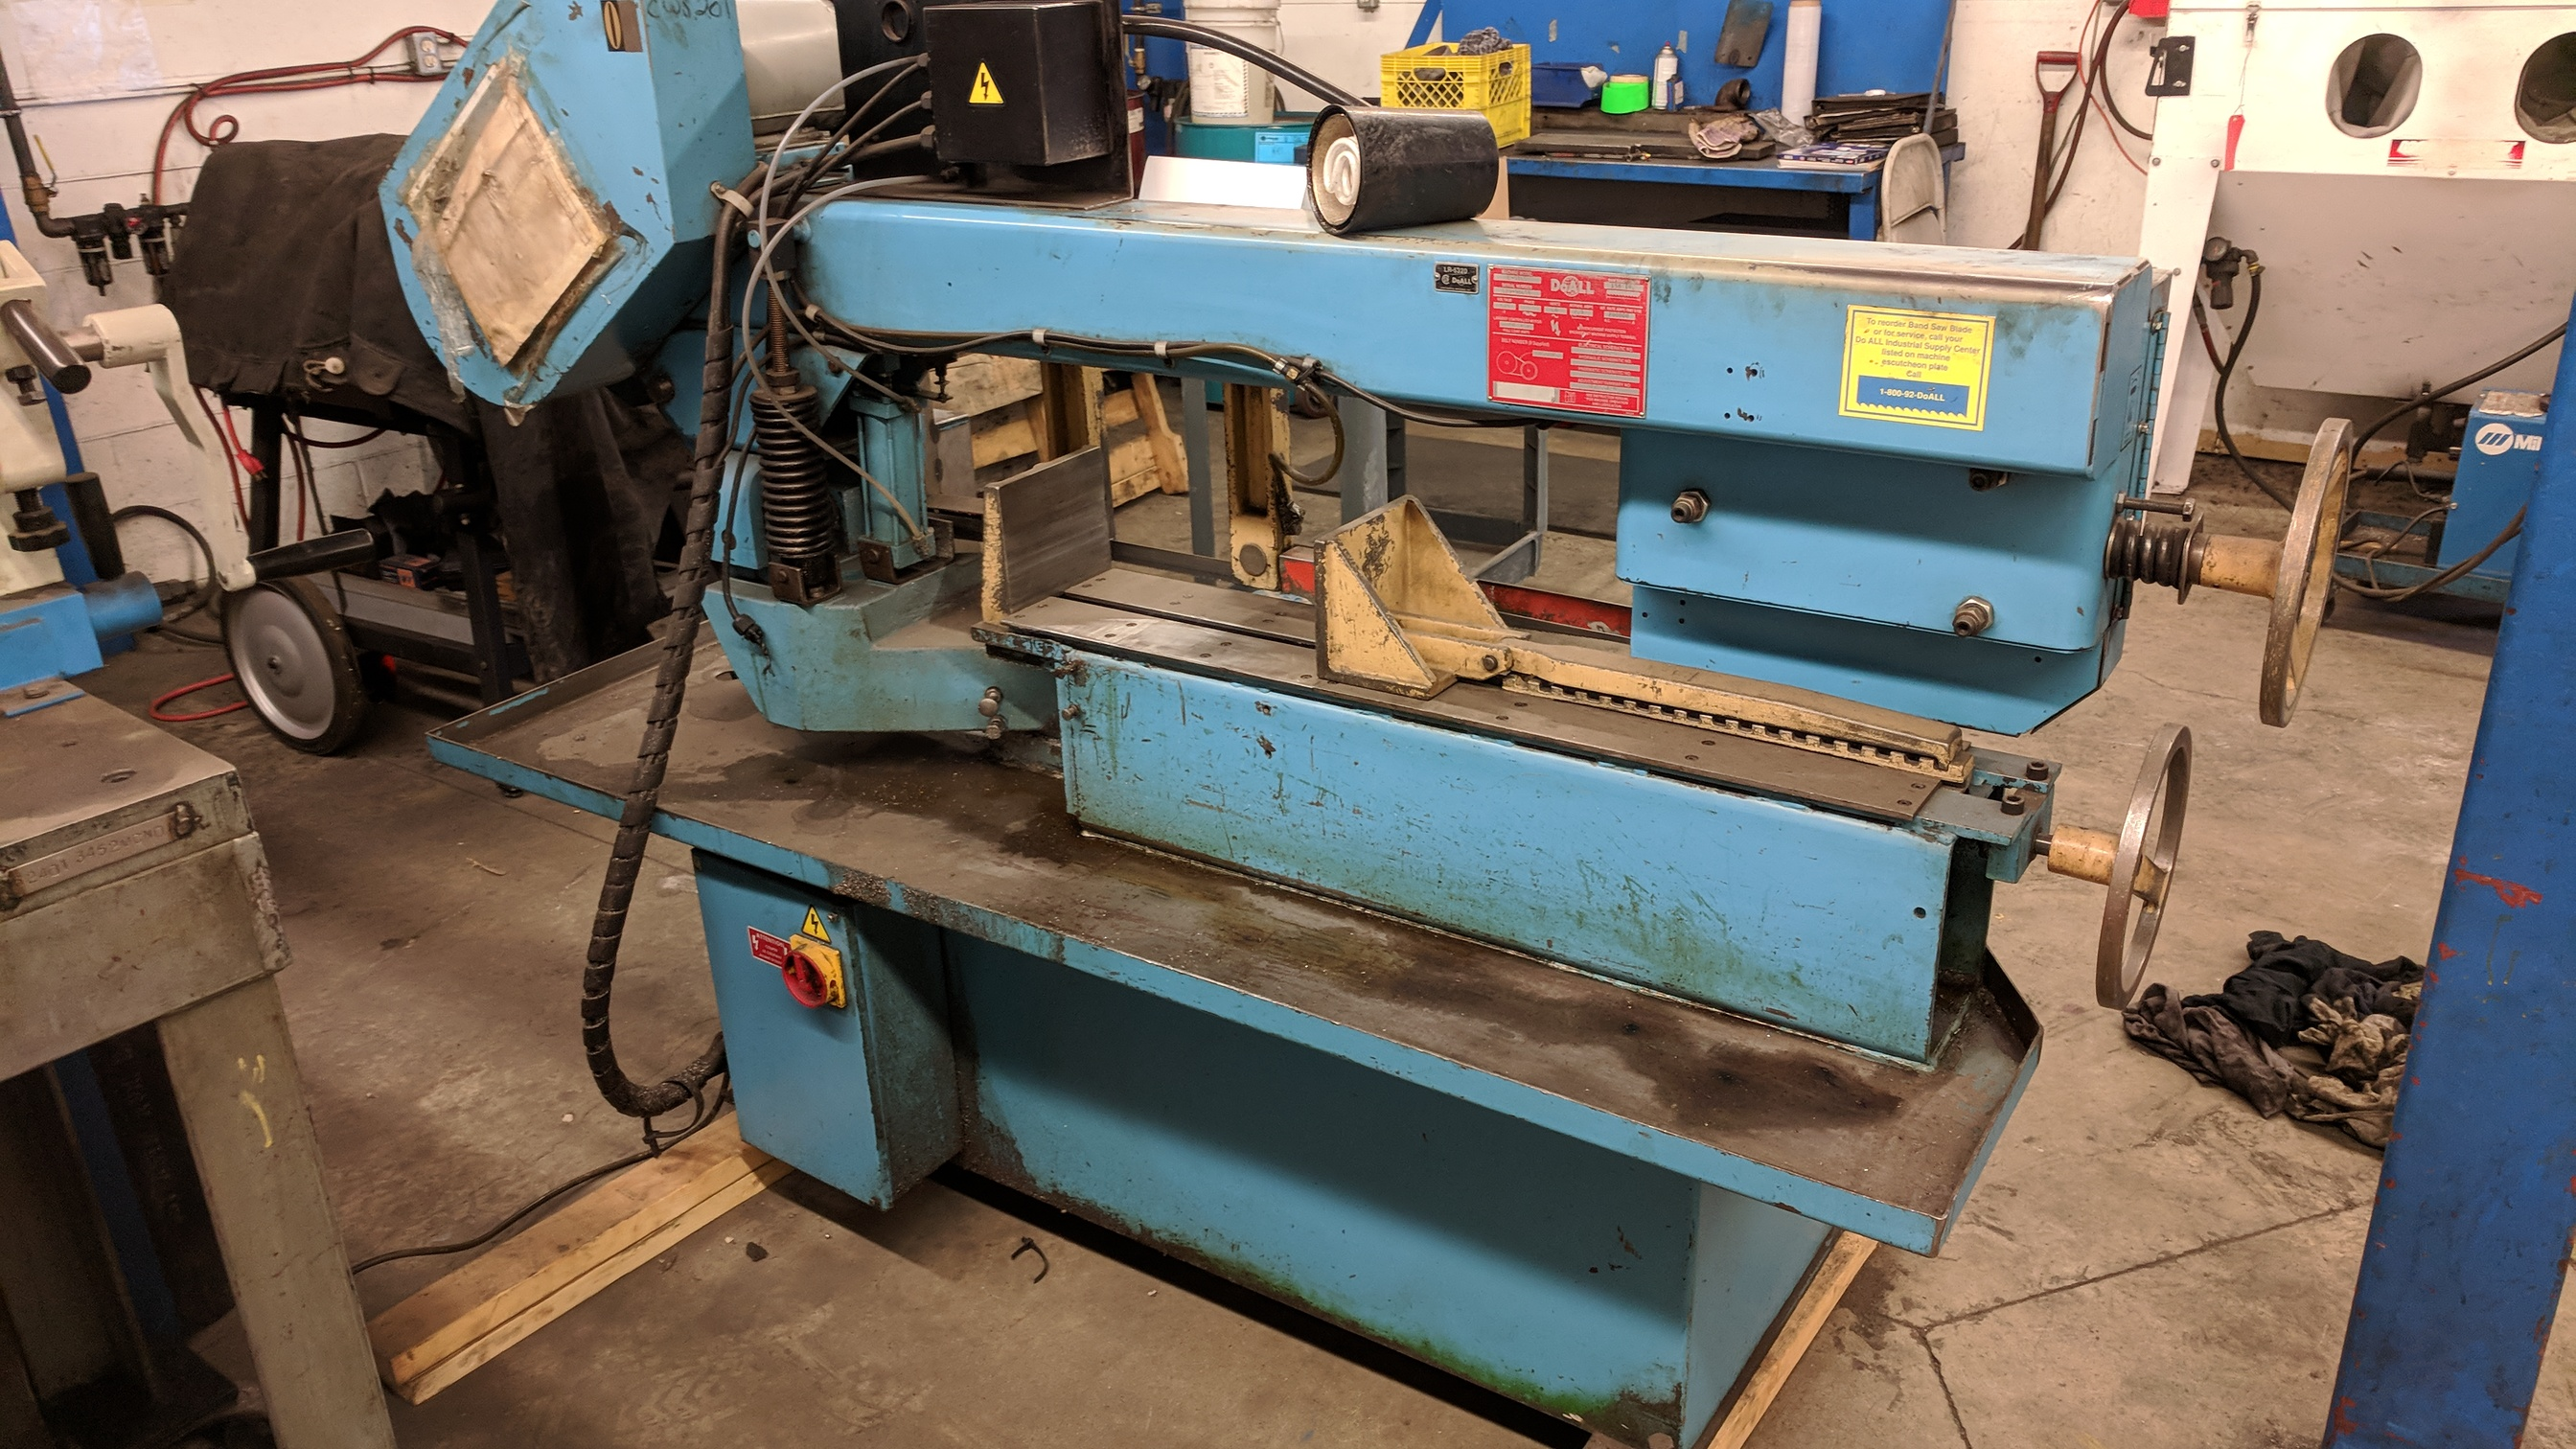 """DOALL C916S 9""""X16"""" METAL CUTTING HORIZONTAL BAND SAW WITH 1"""" X .035"""" X 158"""" BLADE, MITER CAPABILITY, - Image 6 of 7"""